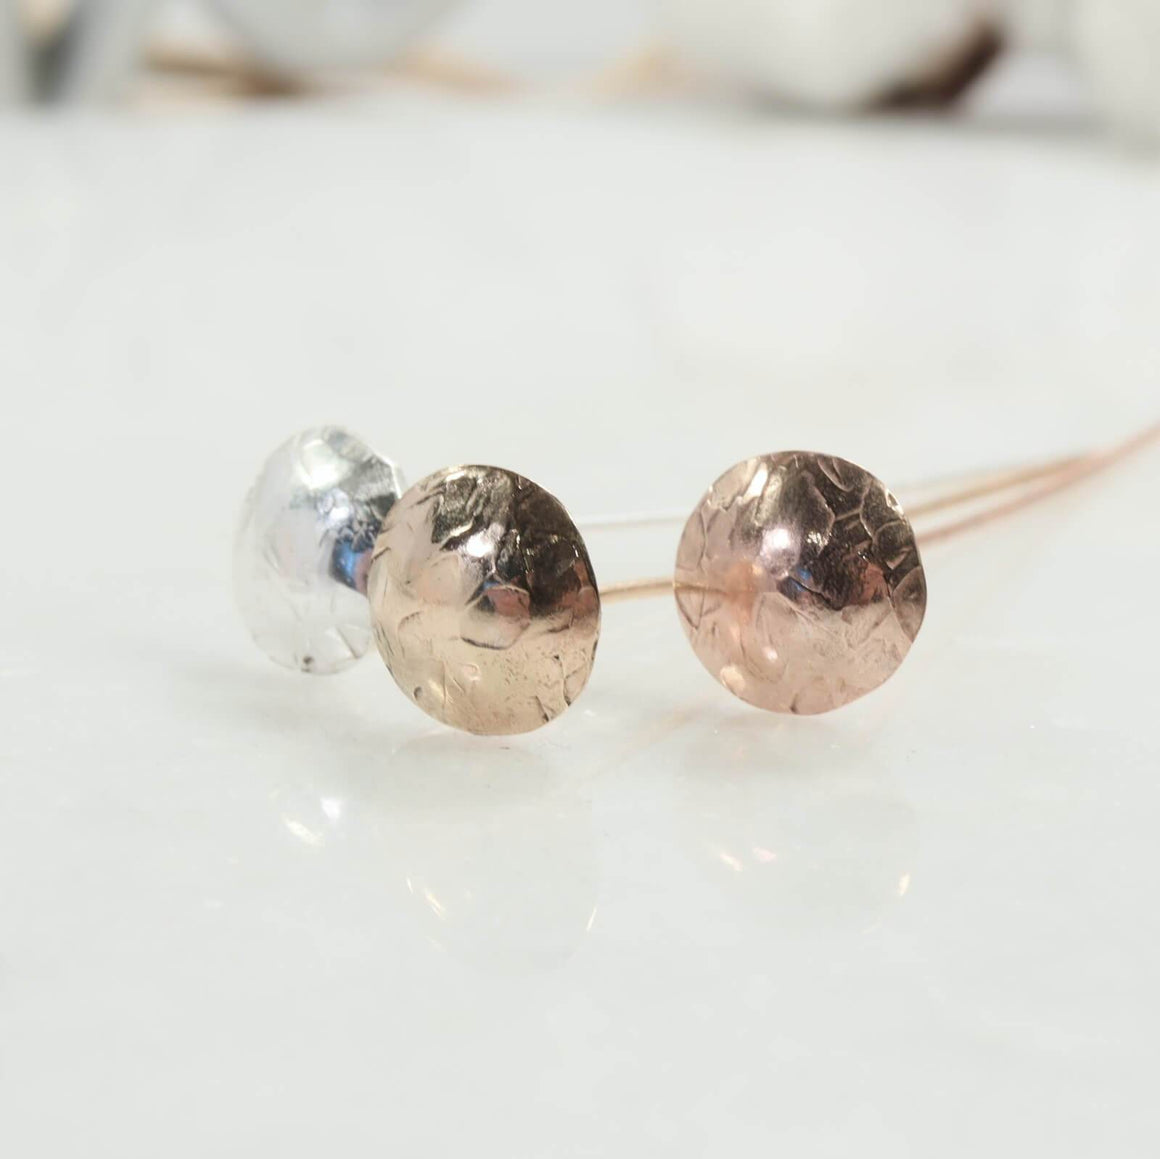 chiseled 8mm headpins in silver, gold, pink gold